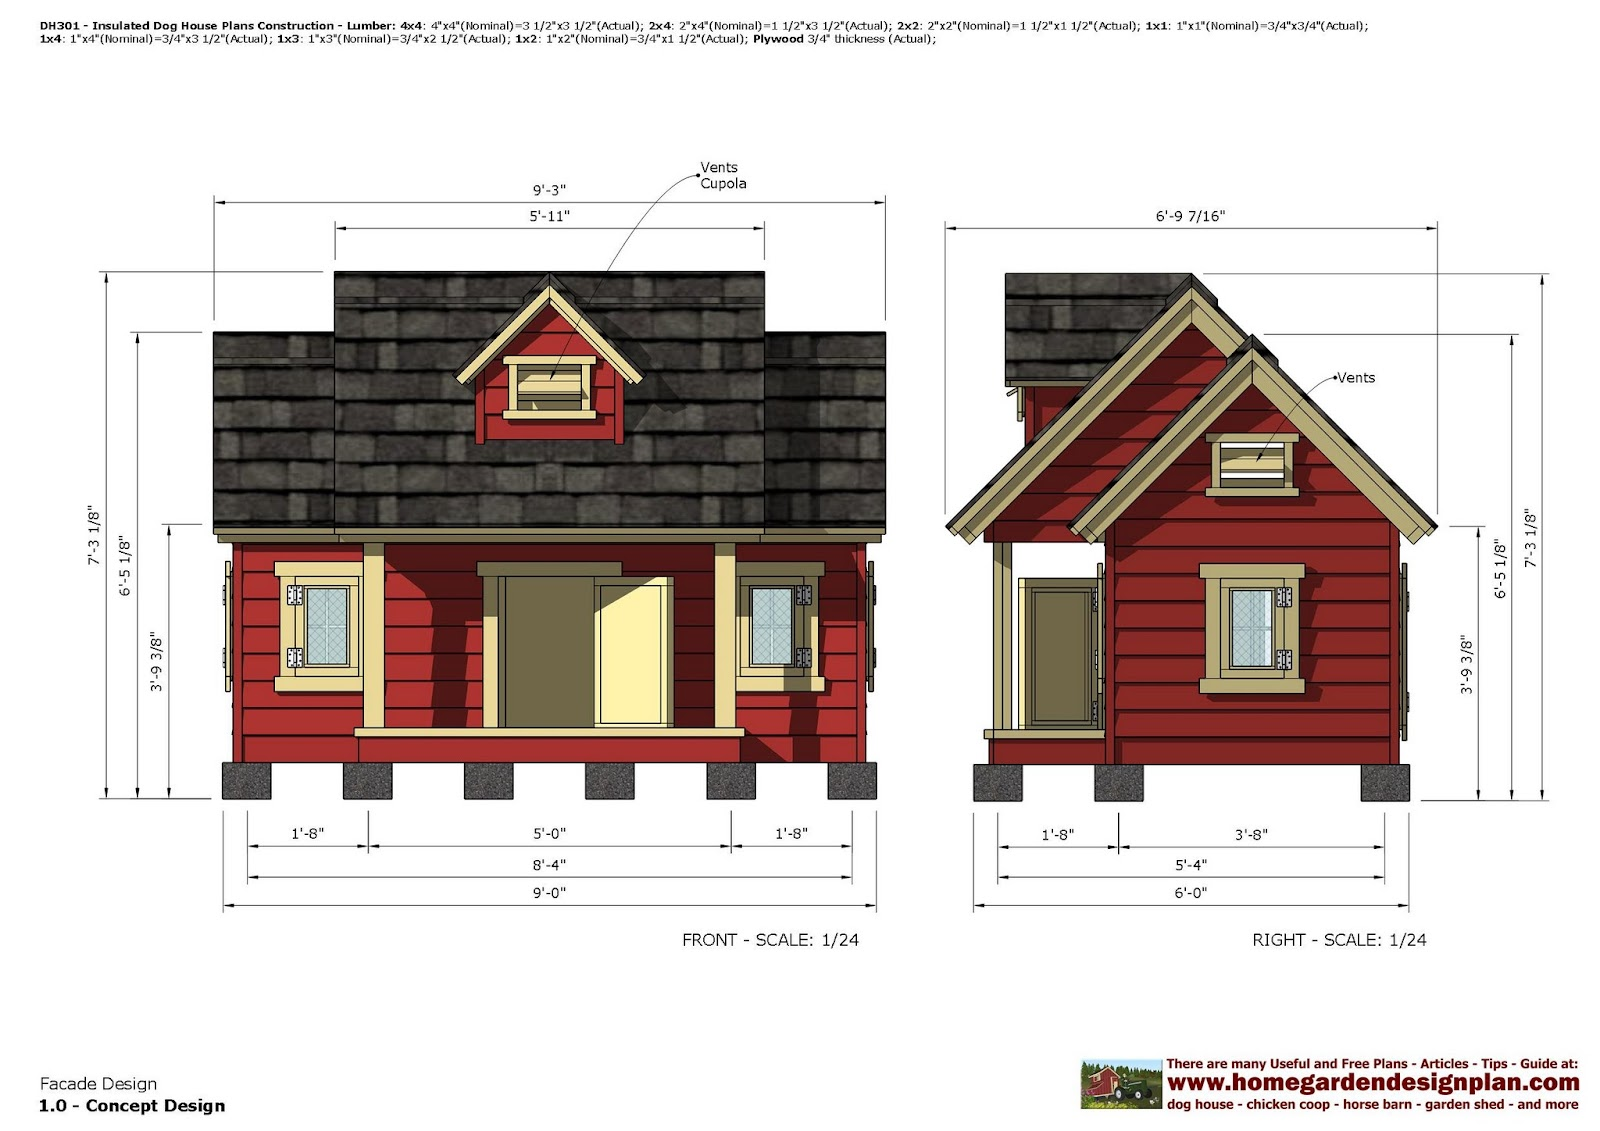 Insulated house plan 28 images insulated cat house for Insulated dog house plans pdf